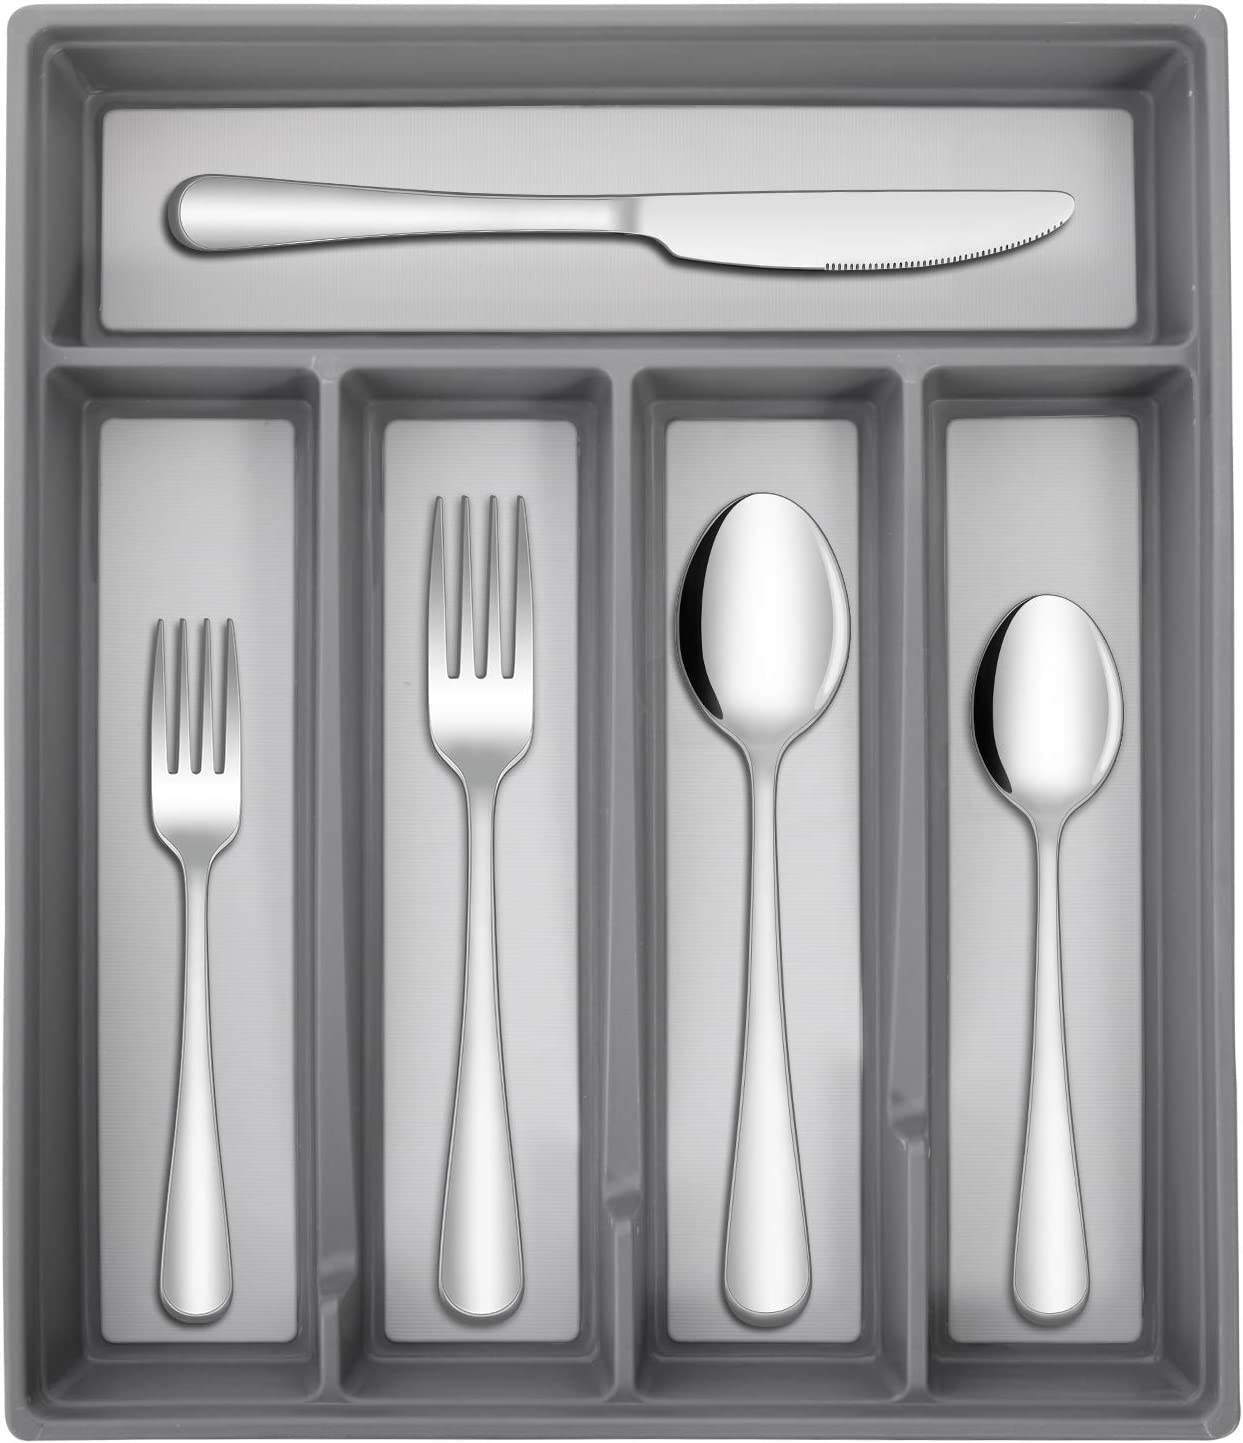 Hiware 20-Piece Silverware Flatware Set with Organizer Service for 4, Stainless Steel Cutlery Utensil Set Includes Forks Knives Spoons, Dishwasher Safe